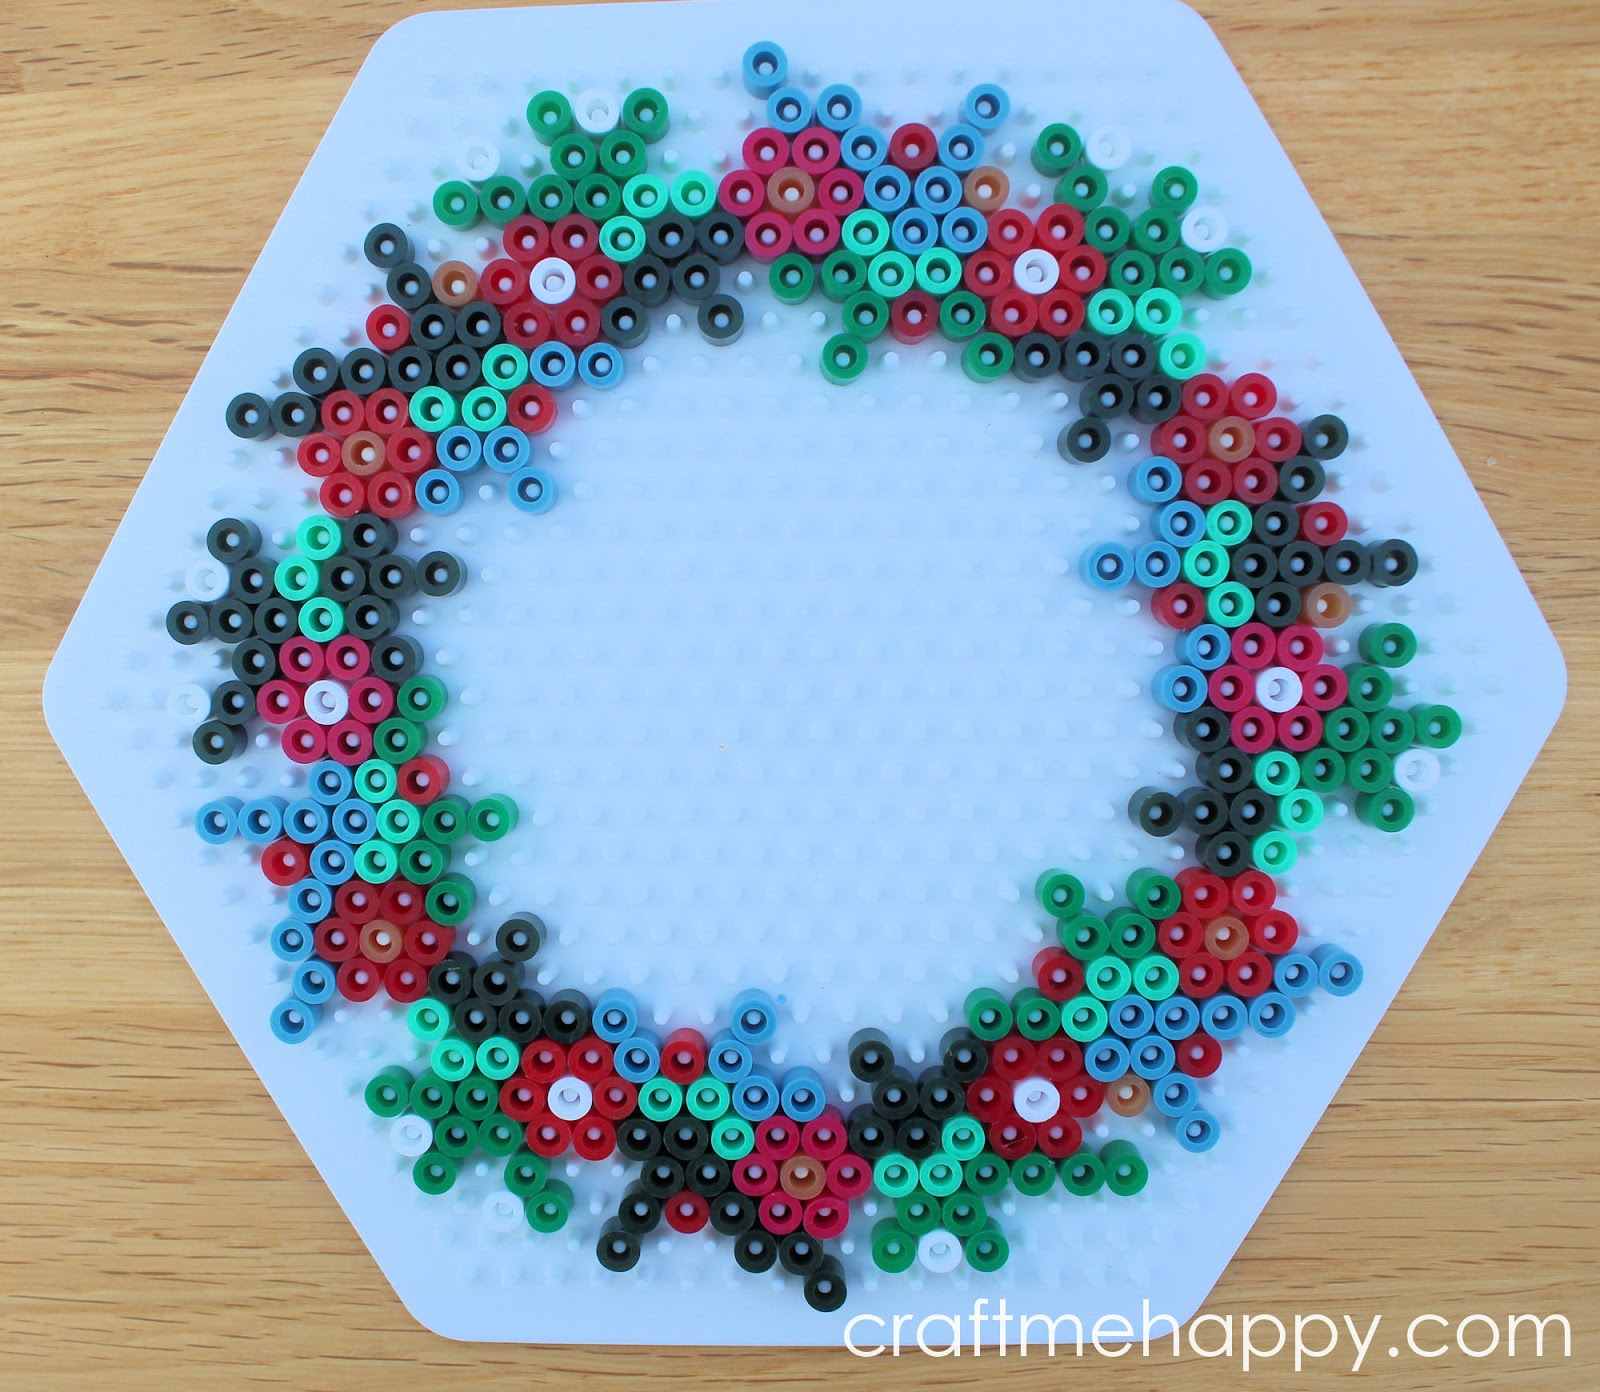 Christmas Hama Bead Designs.Craft Me Happy Hama Bead Christmas Wreath